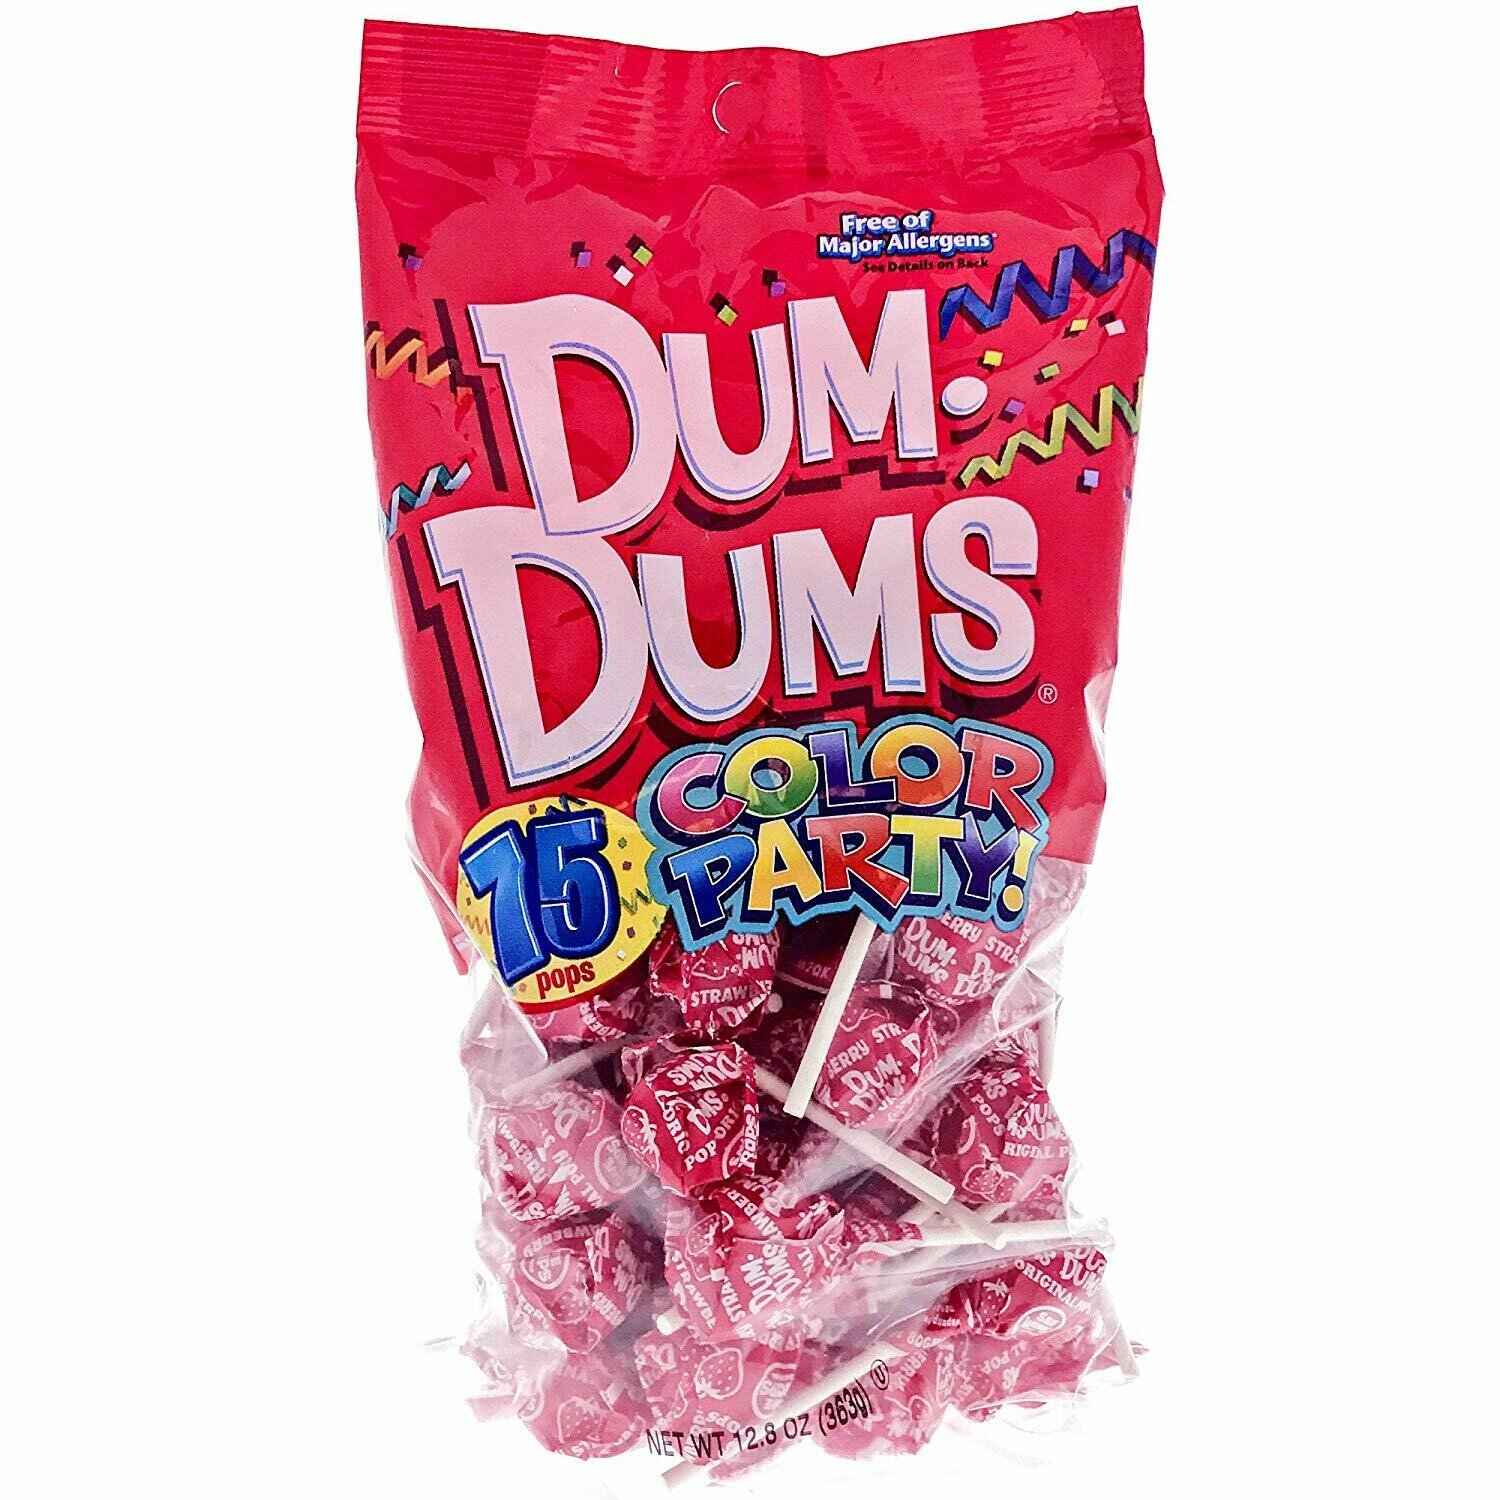 Dum Dums Strawberry 75ct